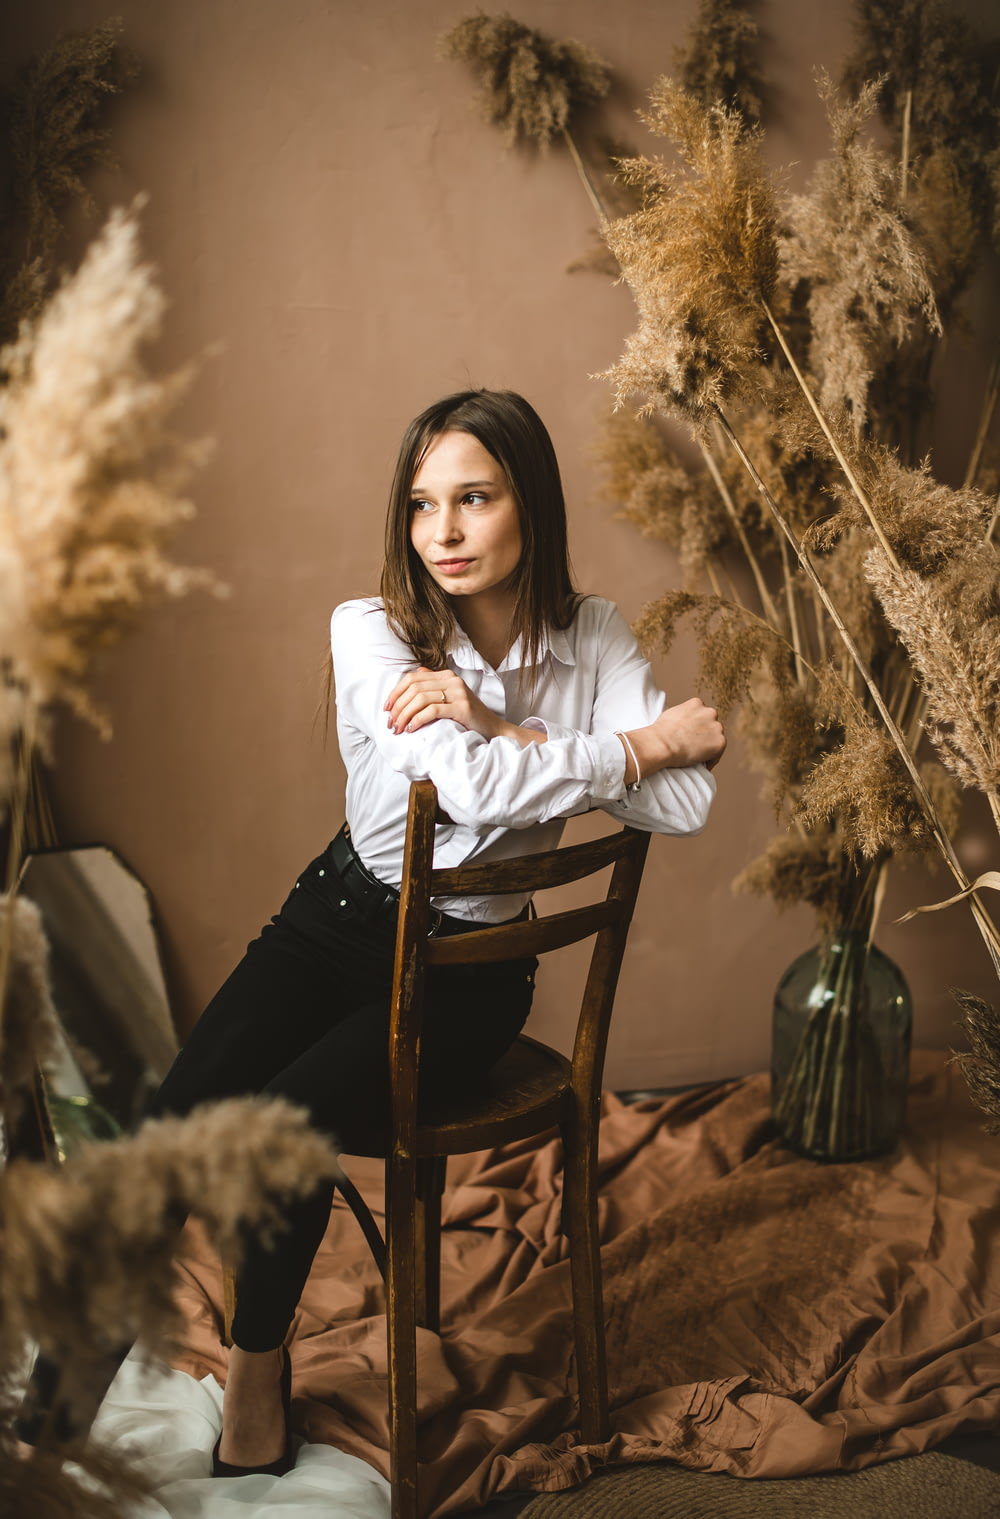 woman in white long sleeve shirt sitting on brown wooden chair